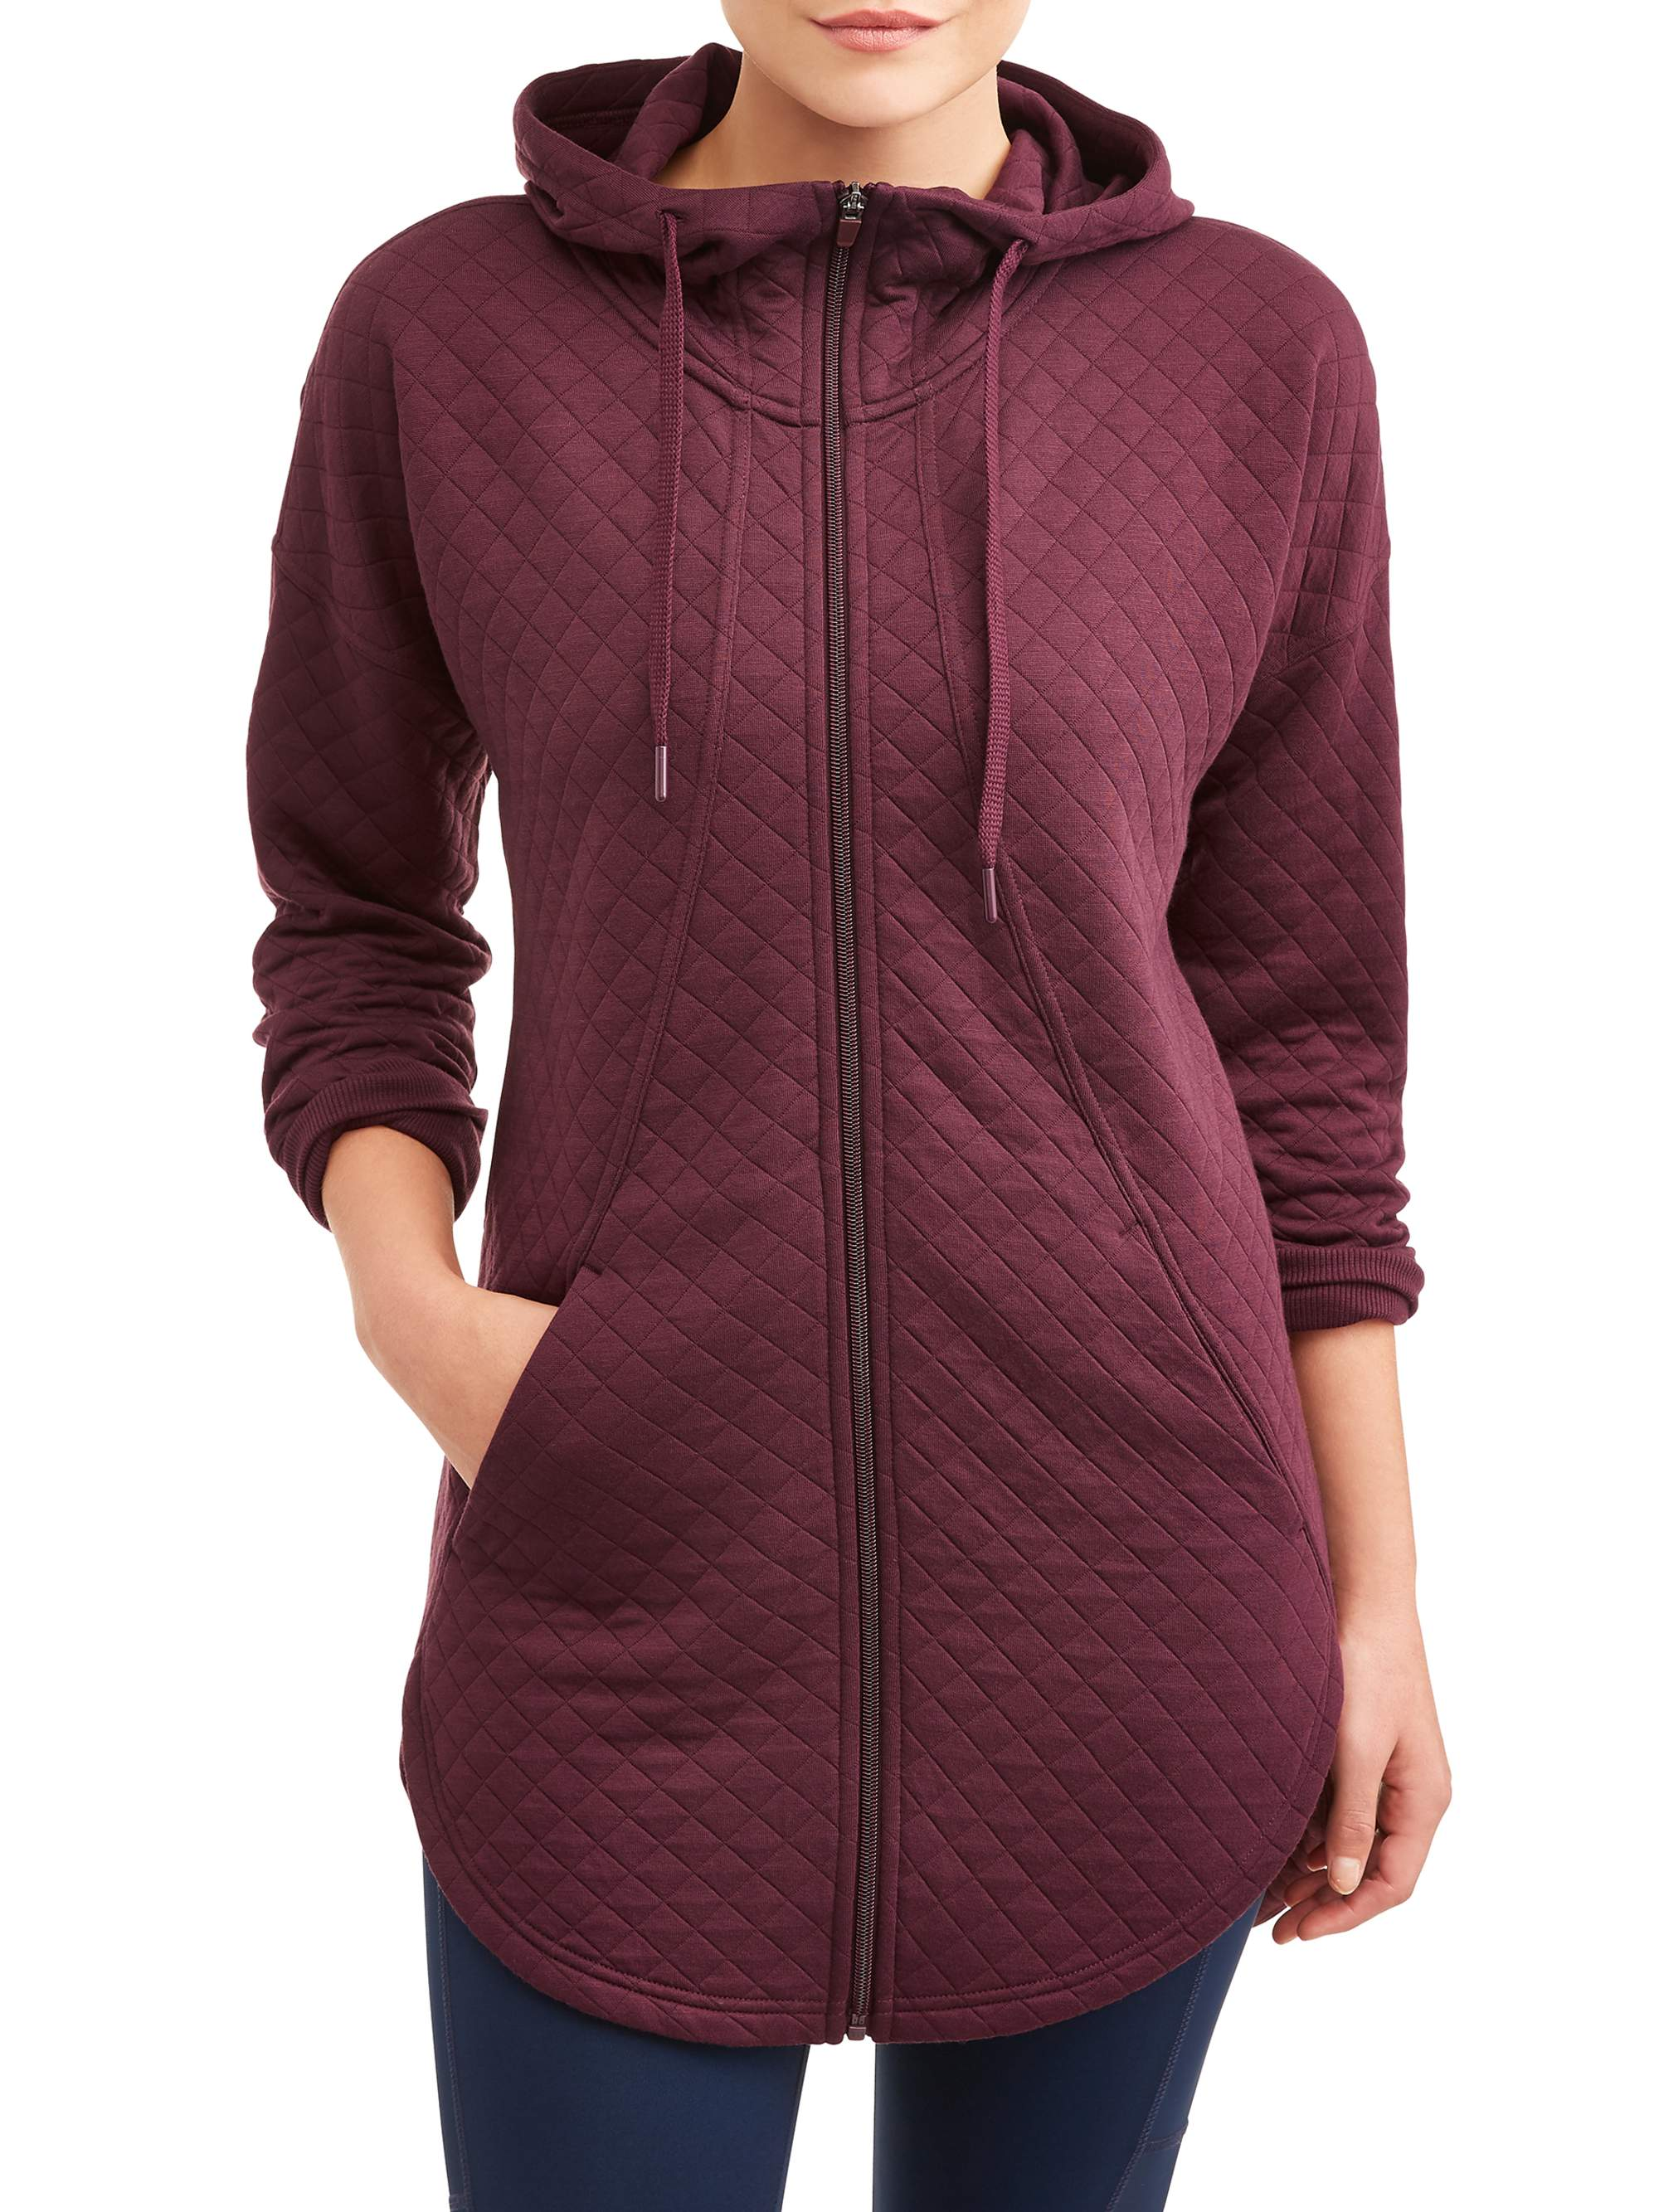 Athletic Works - Women s Active Quilted Jacket - Walmart.com ce1ead509